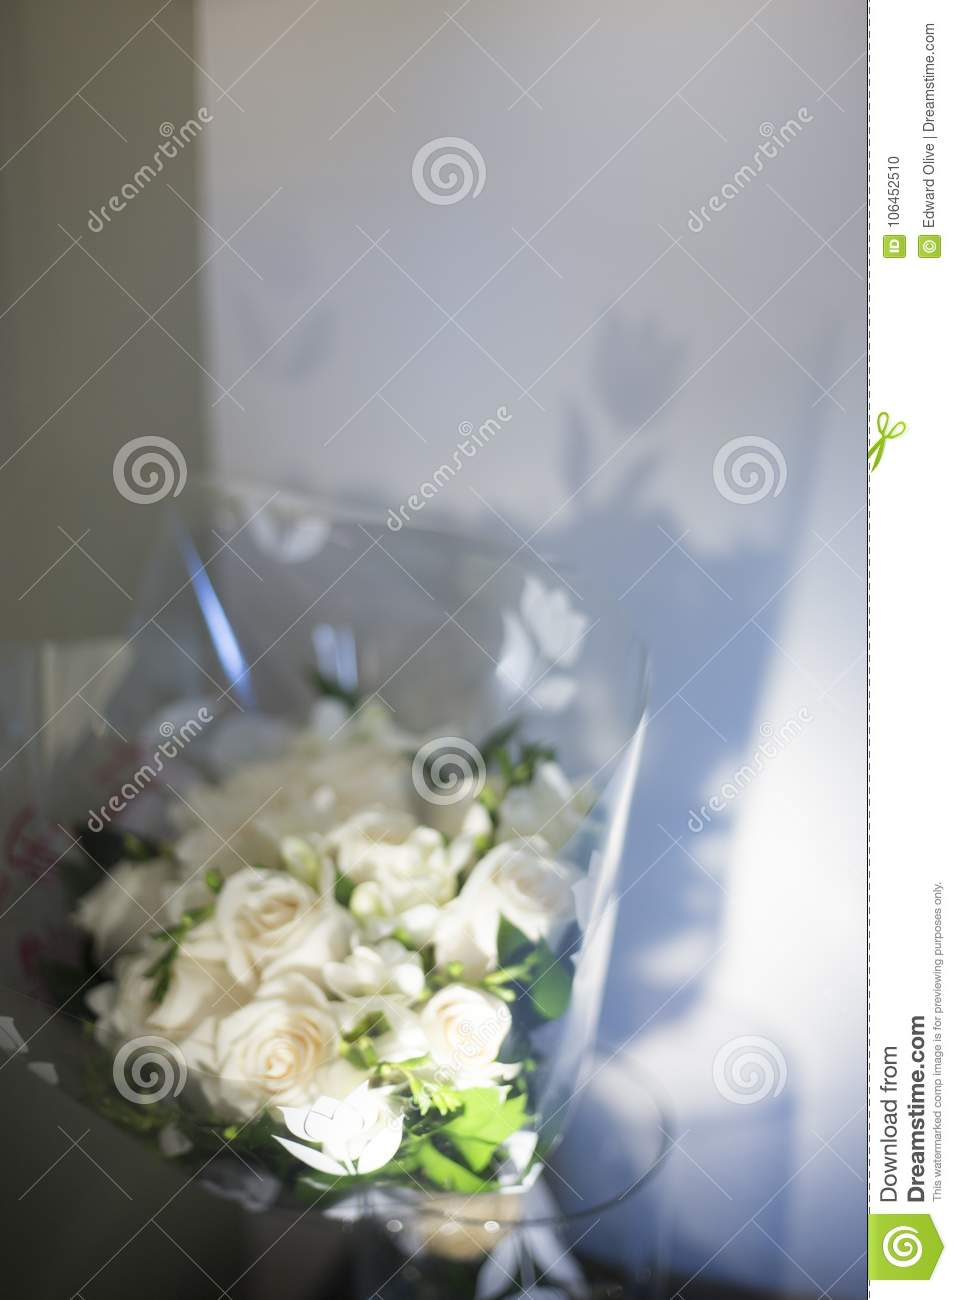 Civil wedding bridal bouquet stock photo image of beauty bridal civil non religious wedding ceremony registry office bridal bouquet of roses flowers of the bride izmirmasajfo